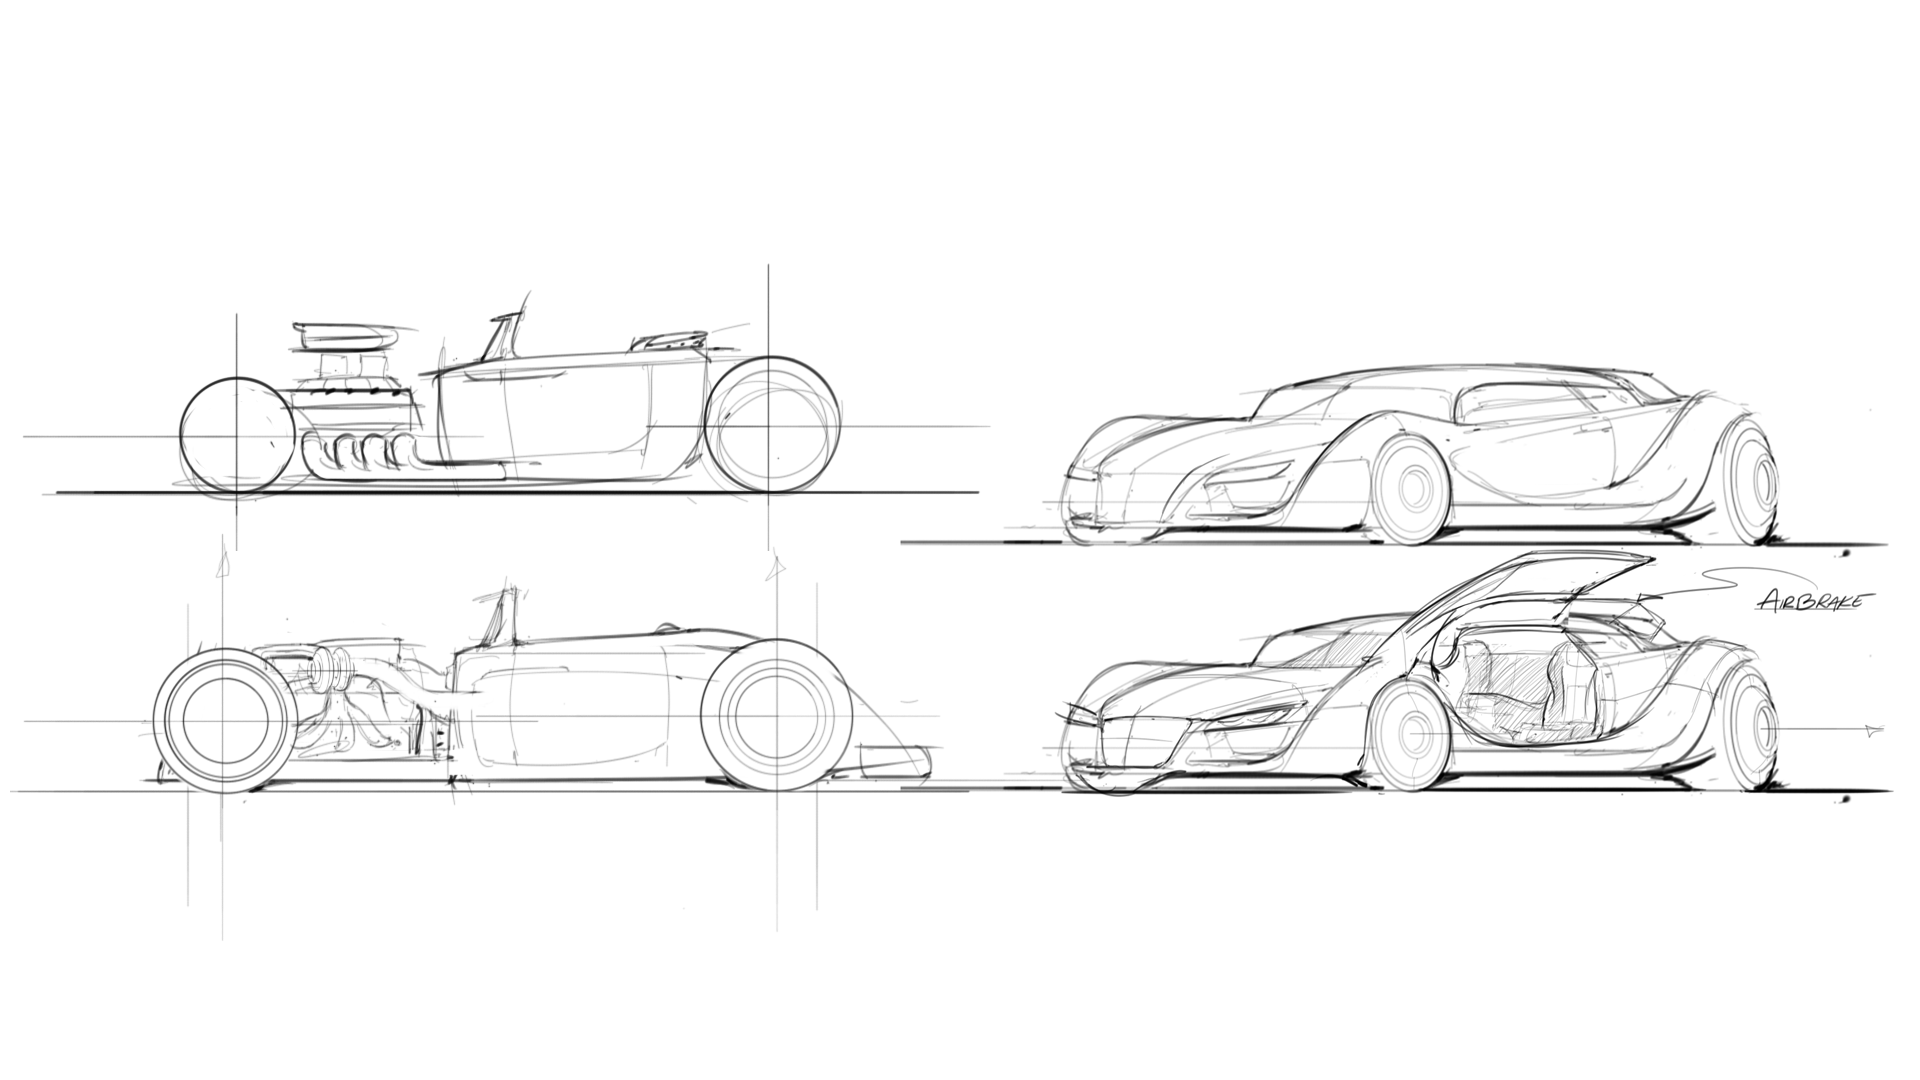 Portfolio drawing industrial design. Some car sketching core